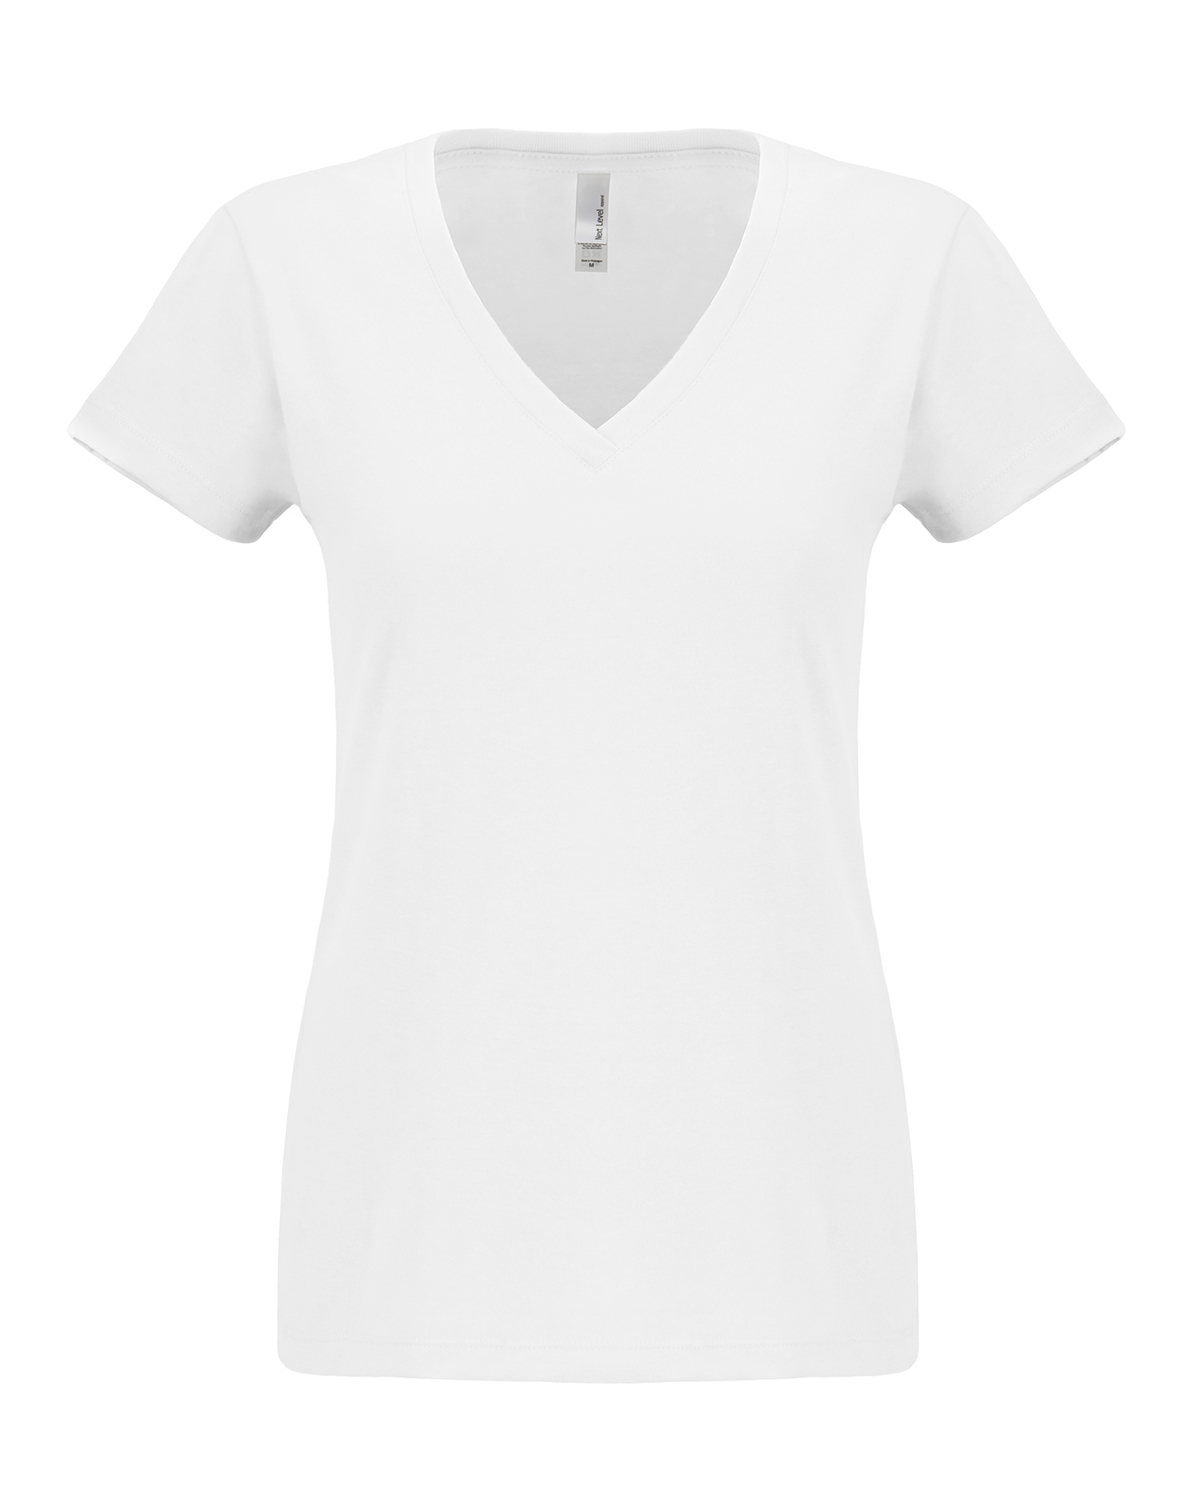 Next Level Apparel N6480 - Ladies' Sueded V Neck Tee